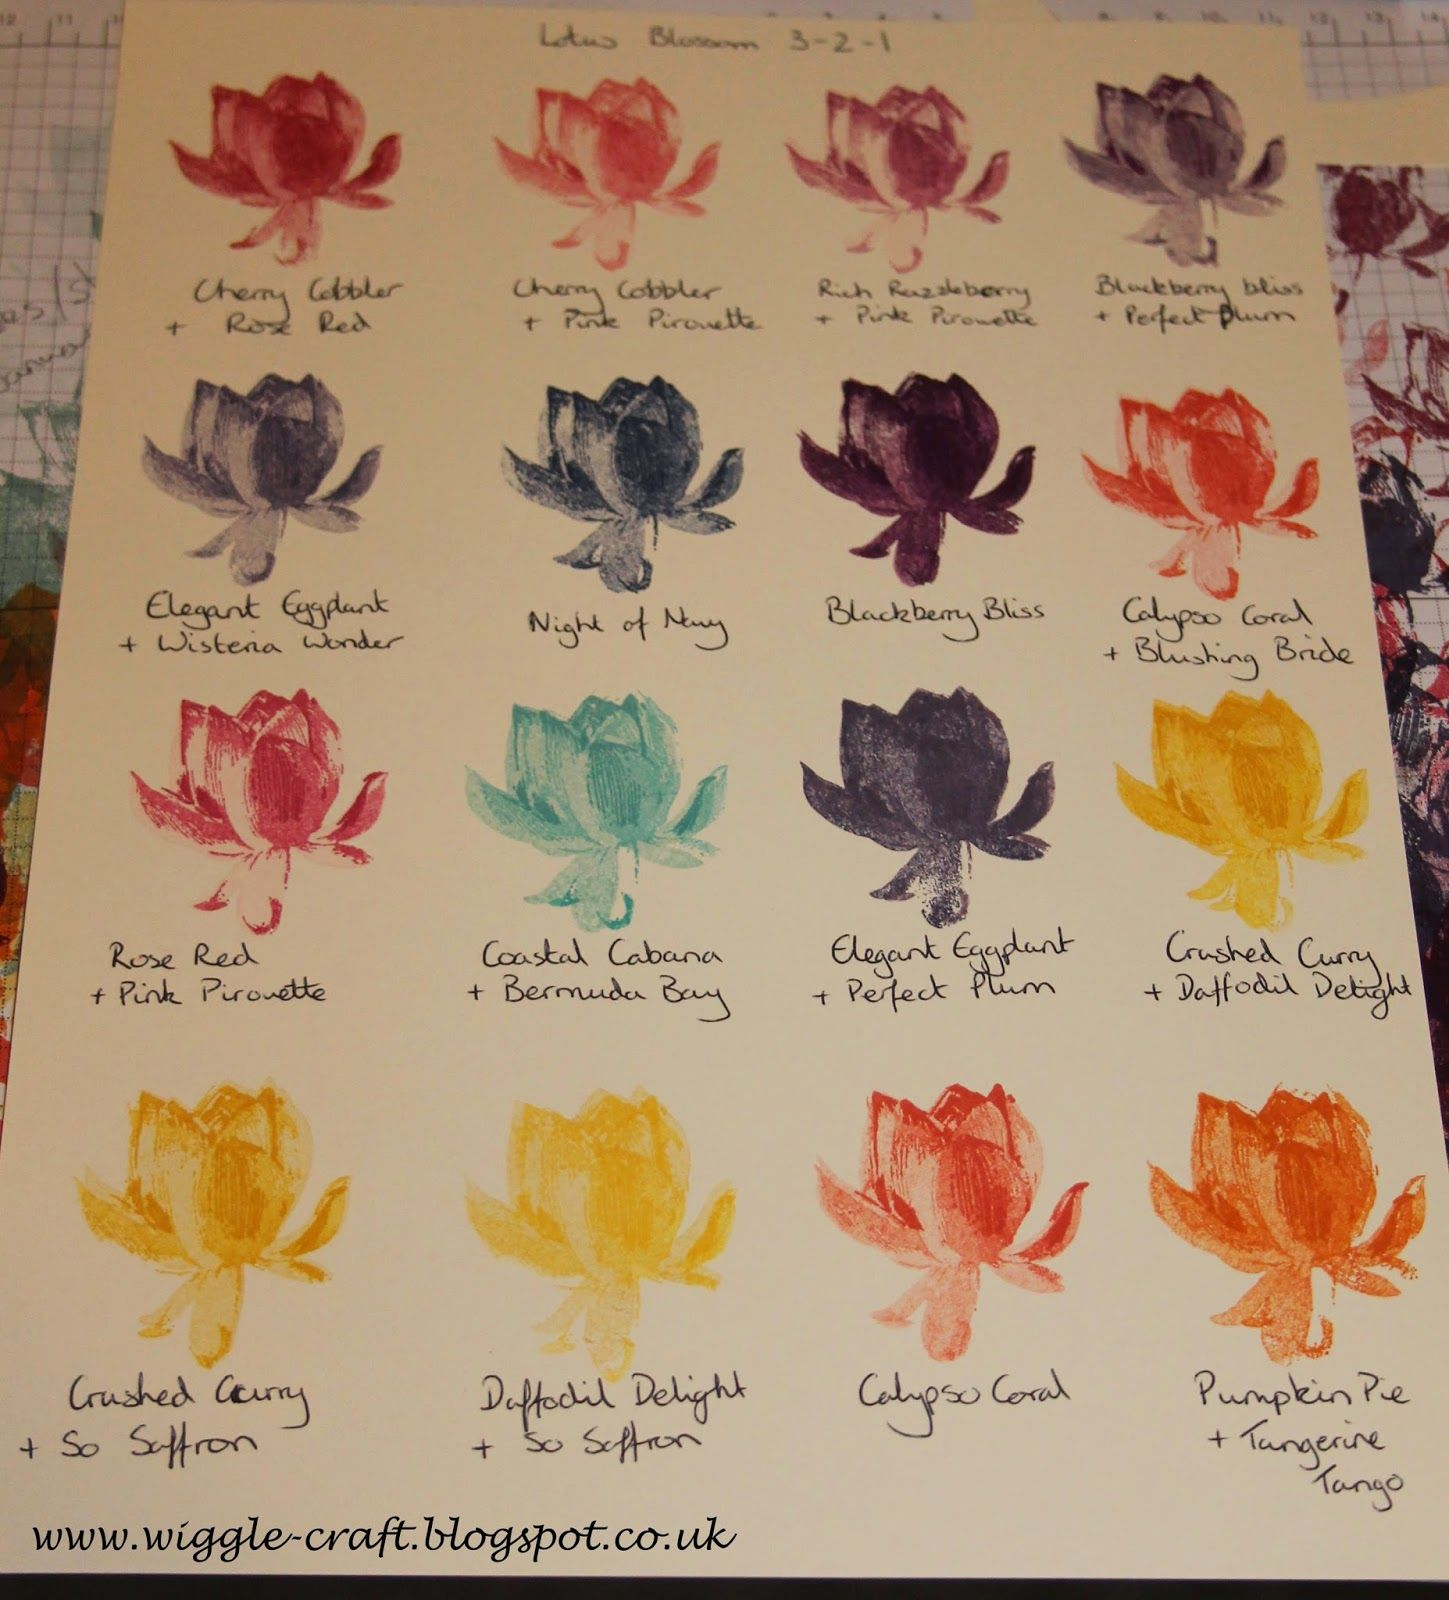 Stampin Up Lotus Blossom Colour Combinations In 3 2 1 Stamp Order